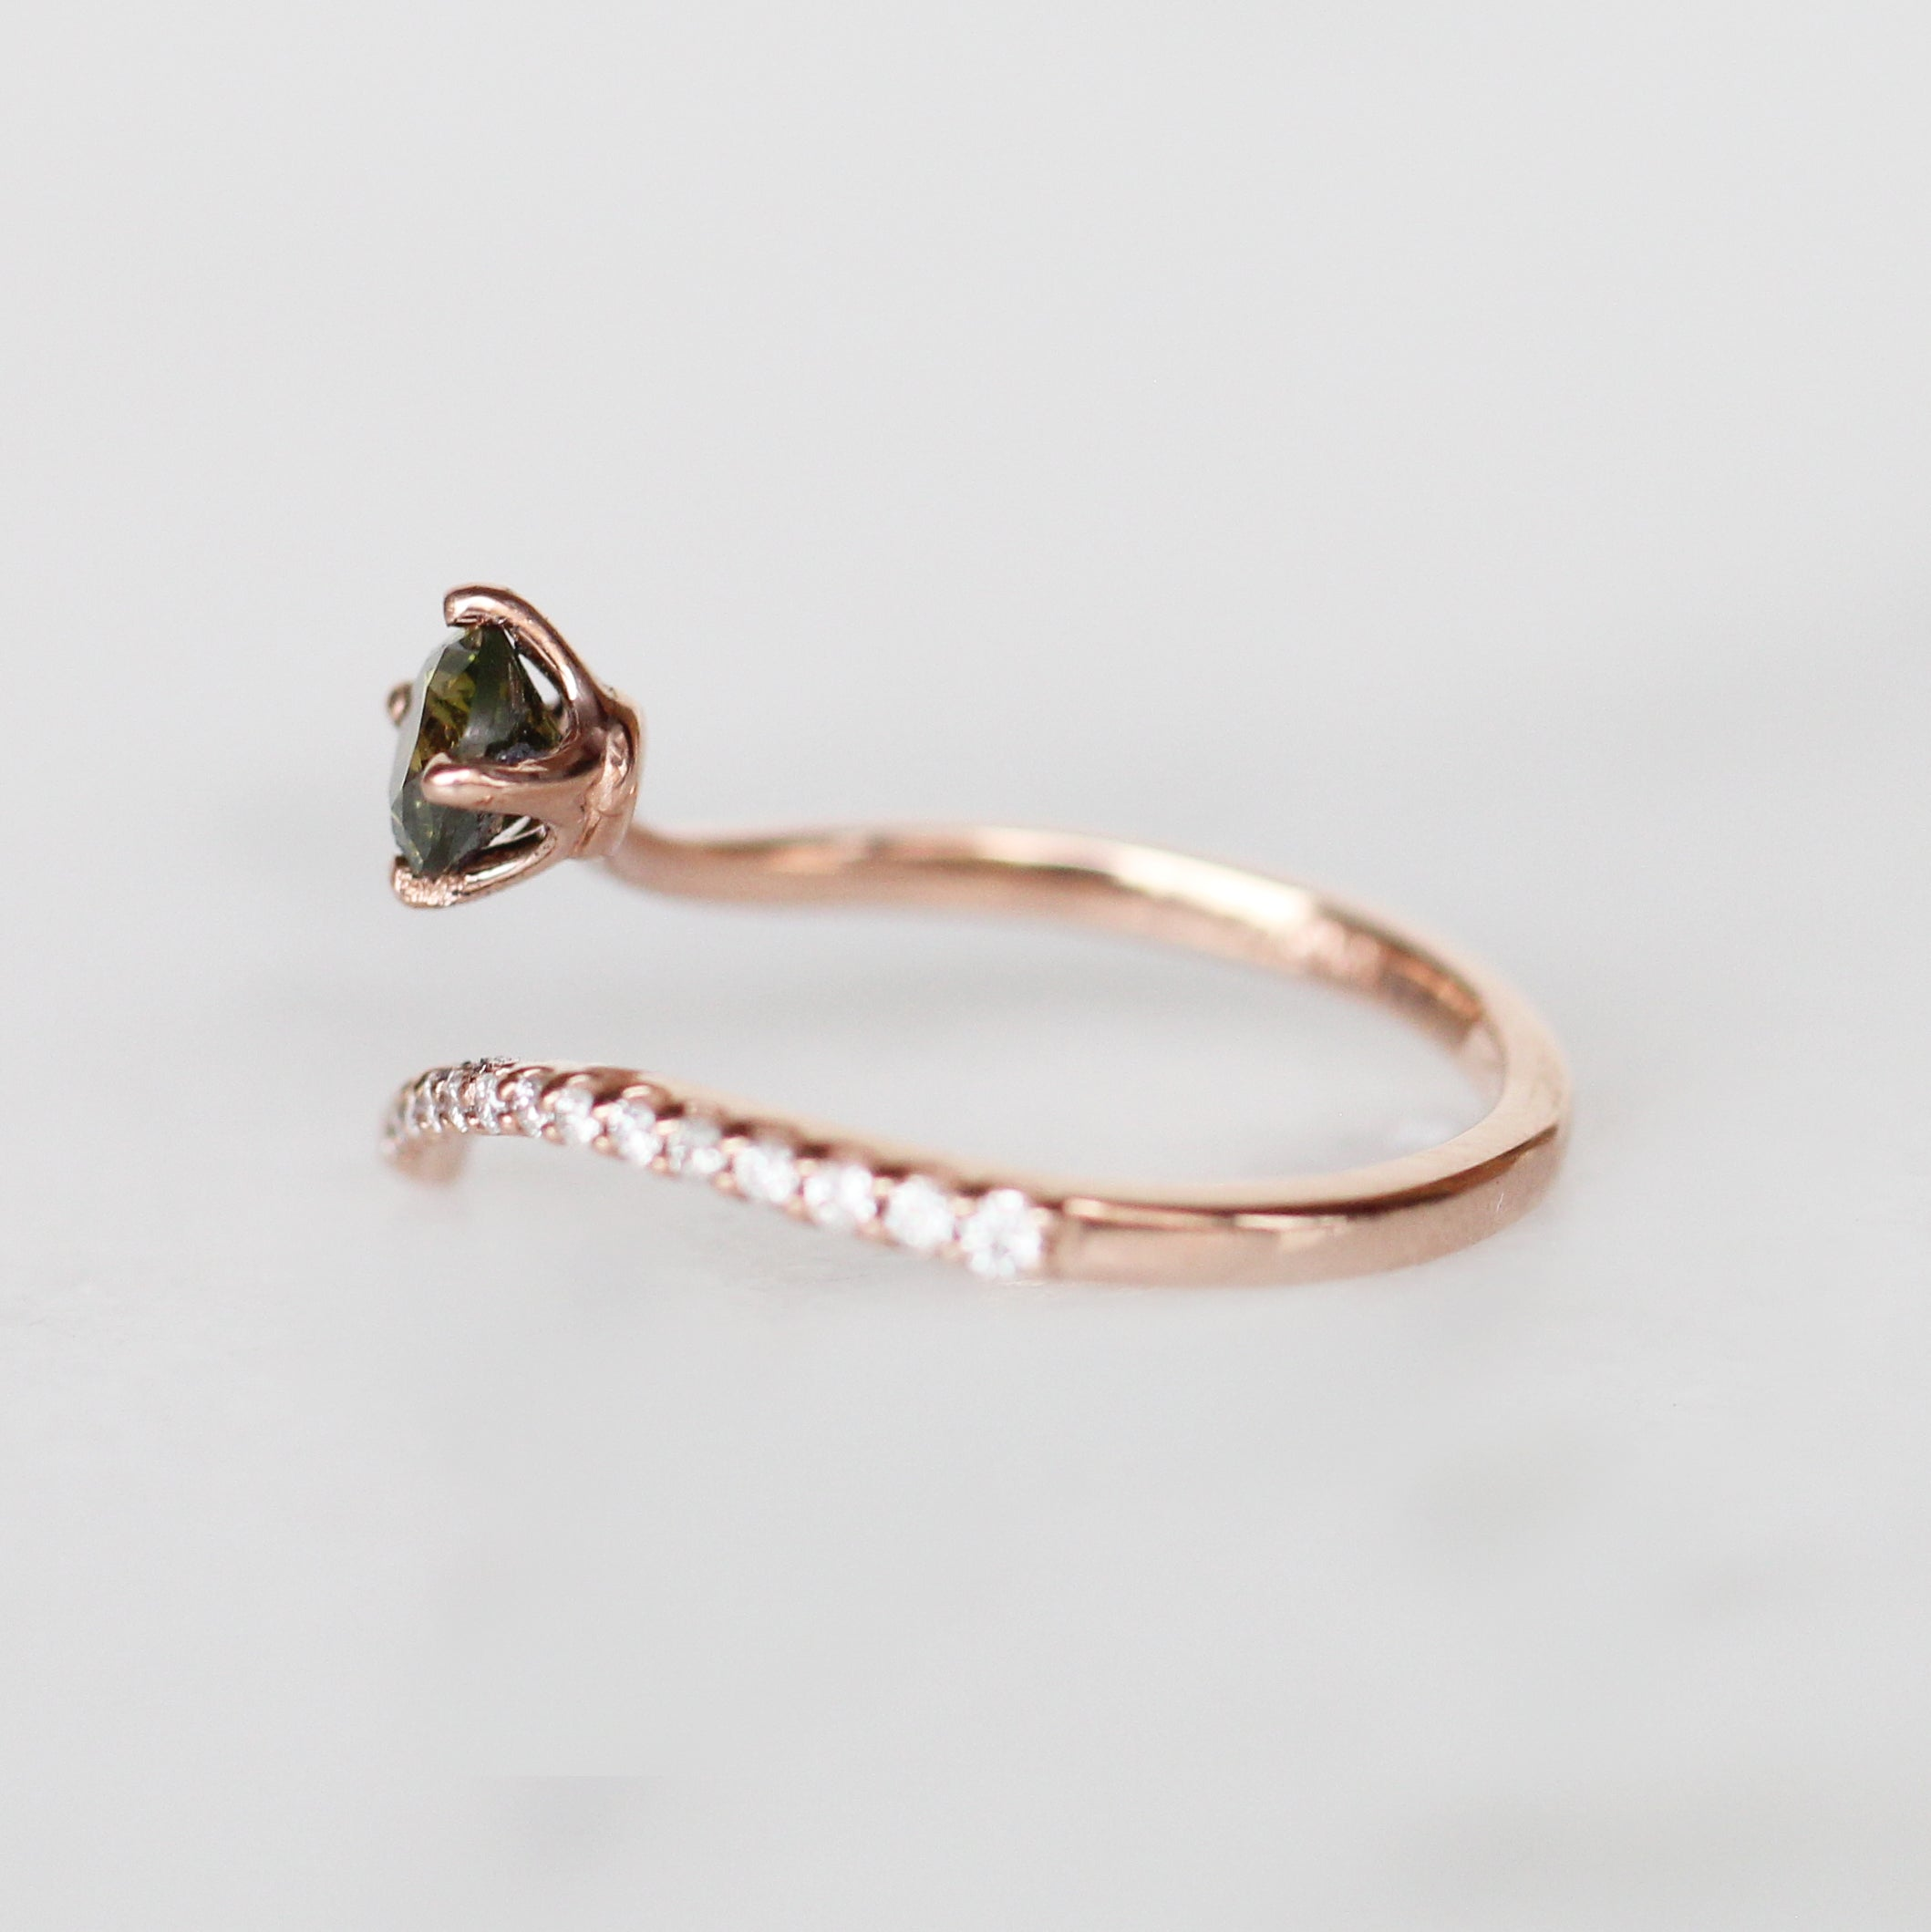 Nebula Ring with .55ct Olive Green Diamond in 10k Rose Gold- Ready to Size and Ship - Celestial Diamonds ® by Midwinter Co.